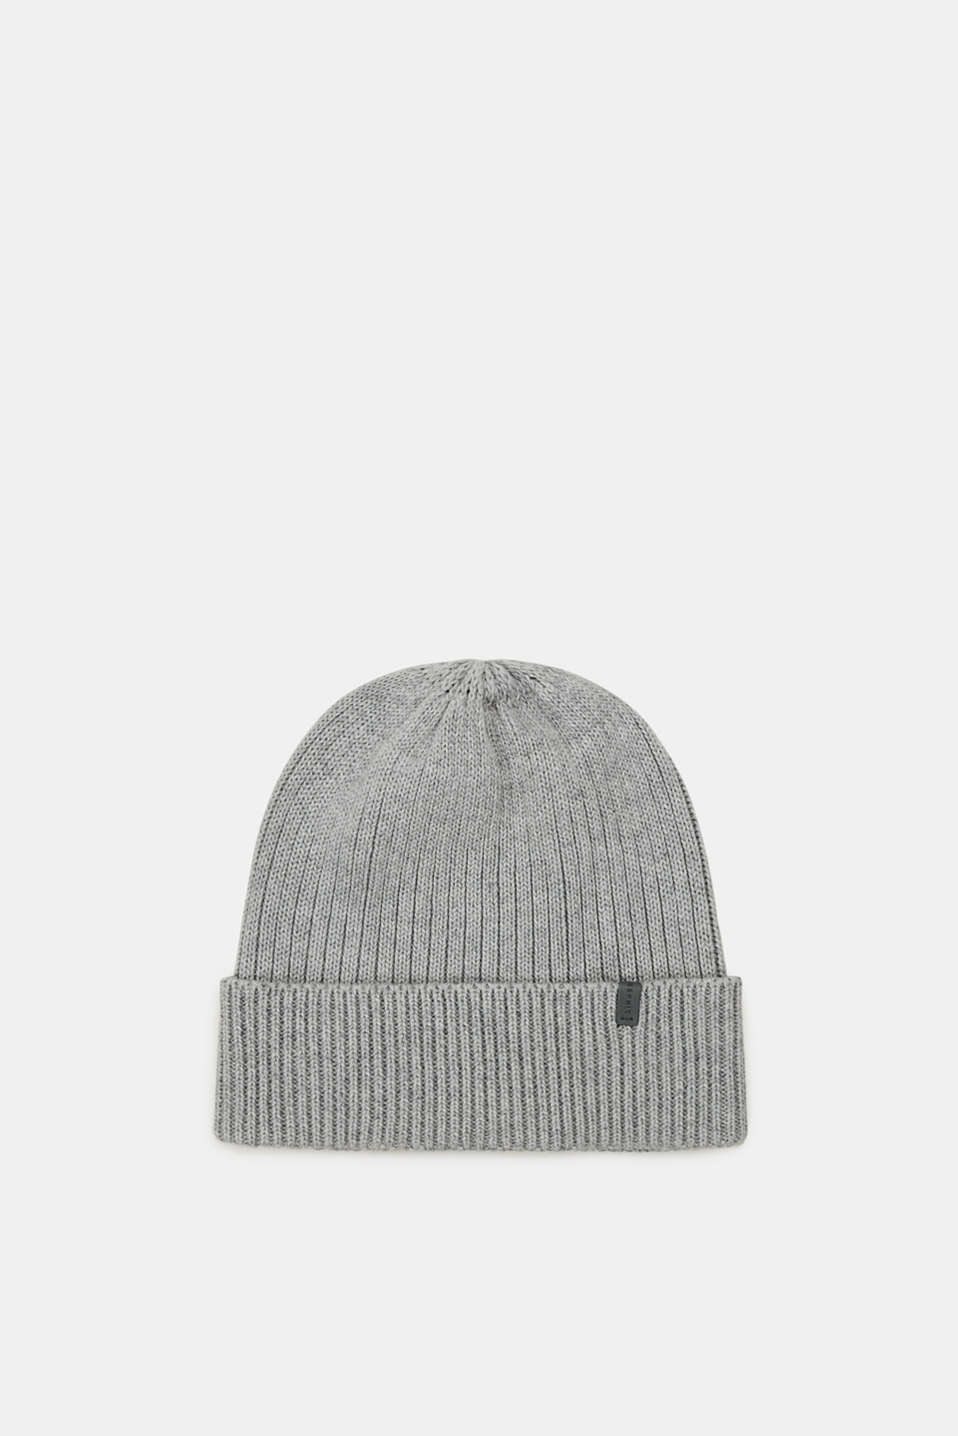 Esprit - Containing wool: cap with a ribbed pattern